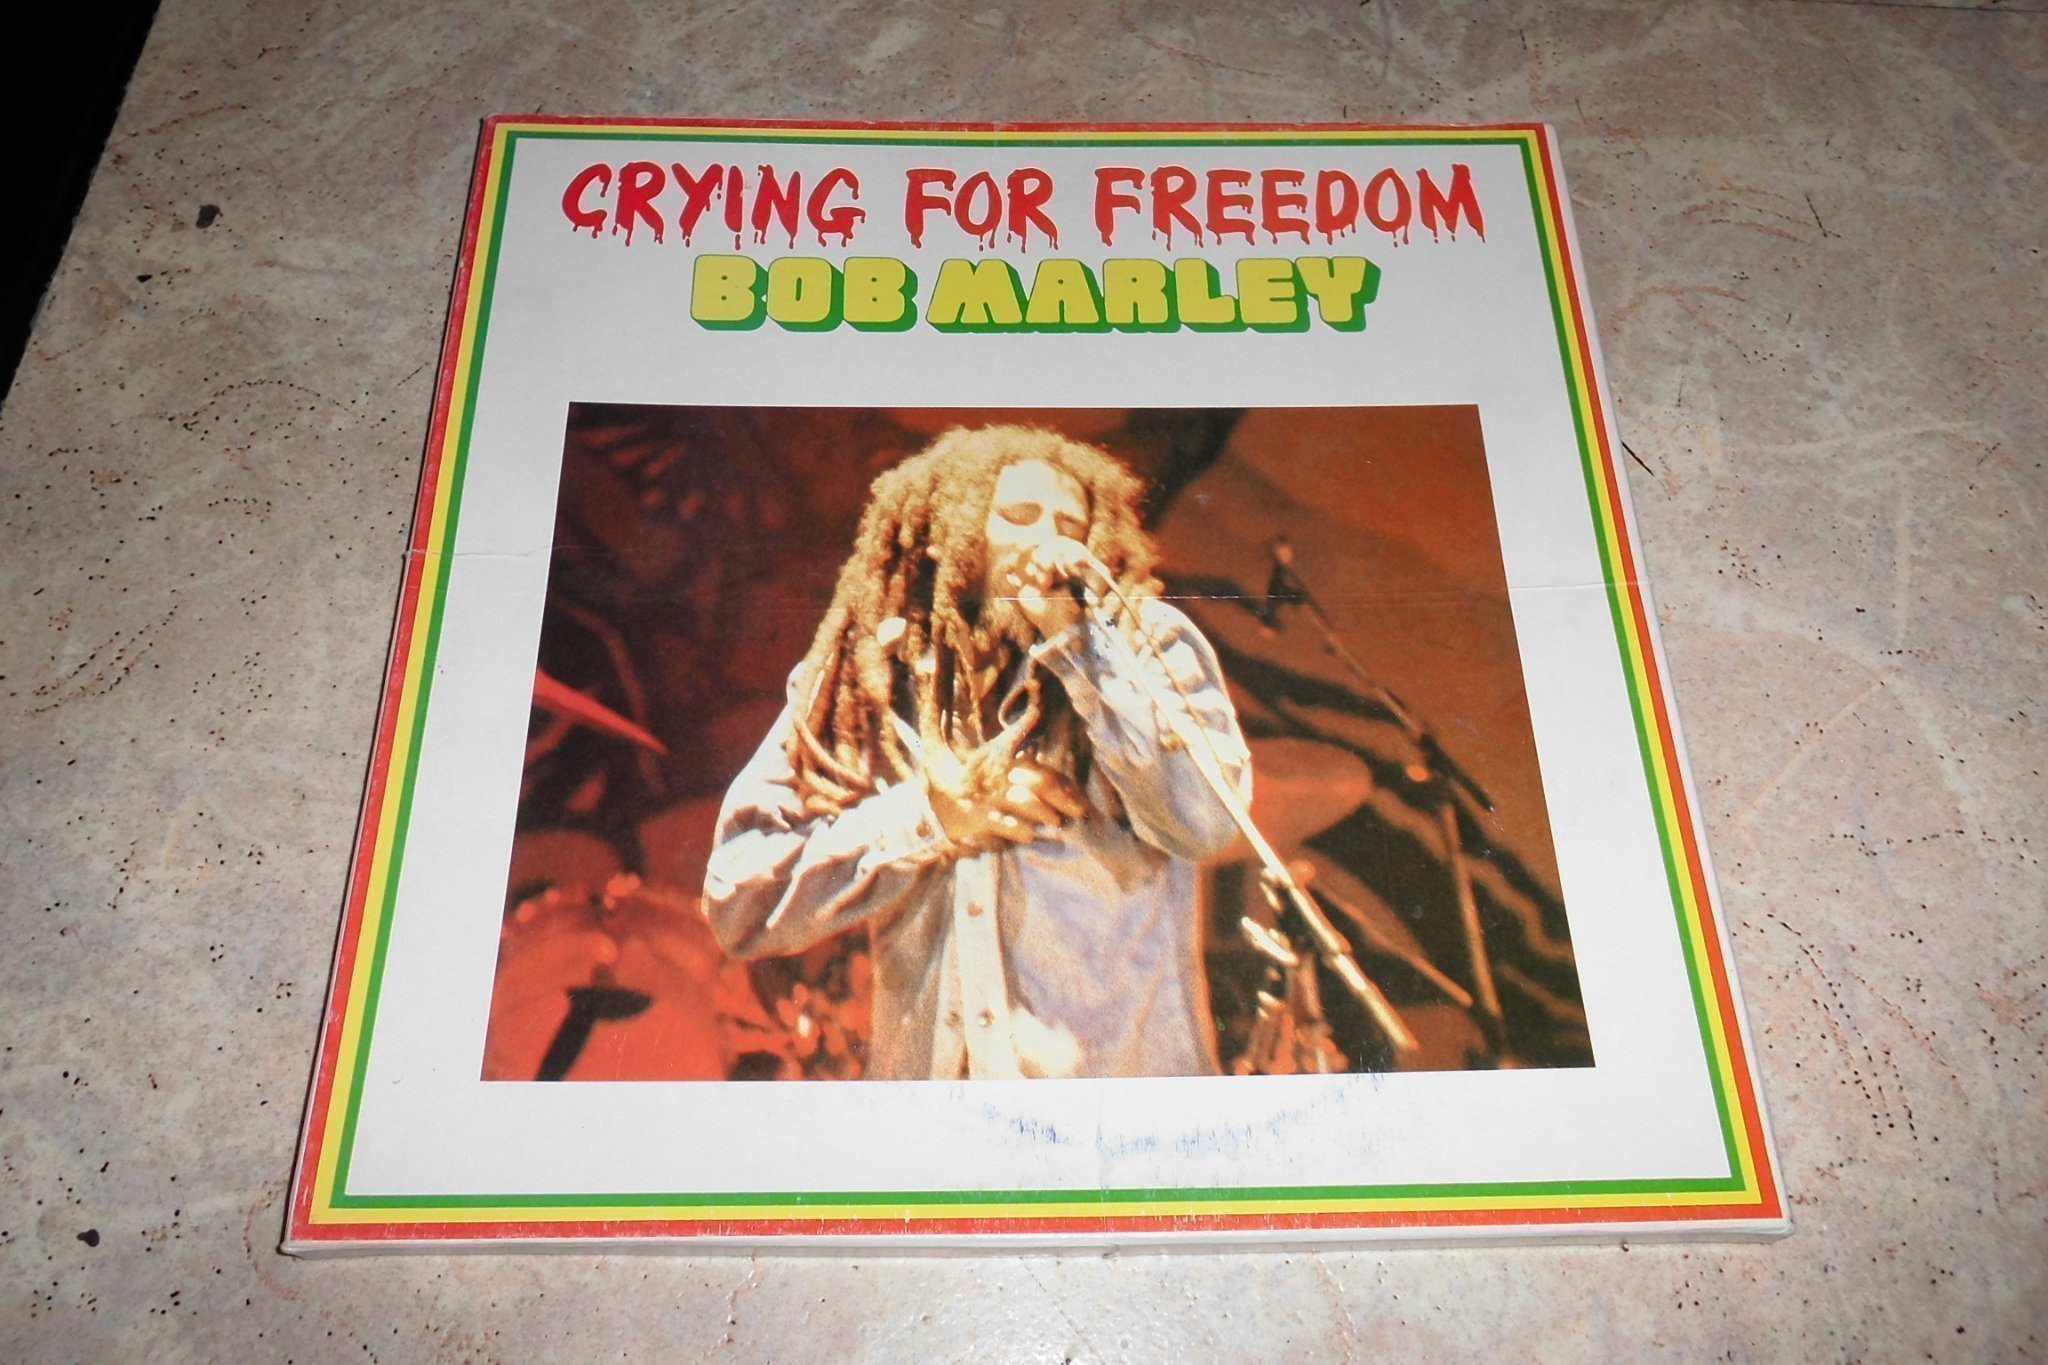 Bob Marley Crying for freedom 3 LP Box